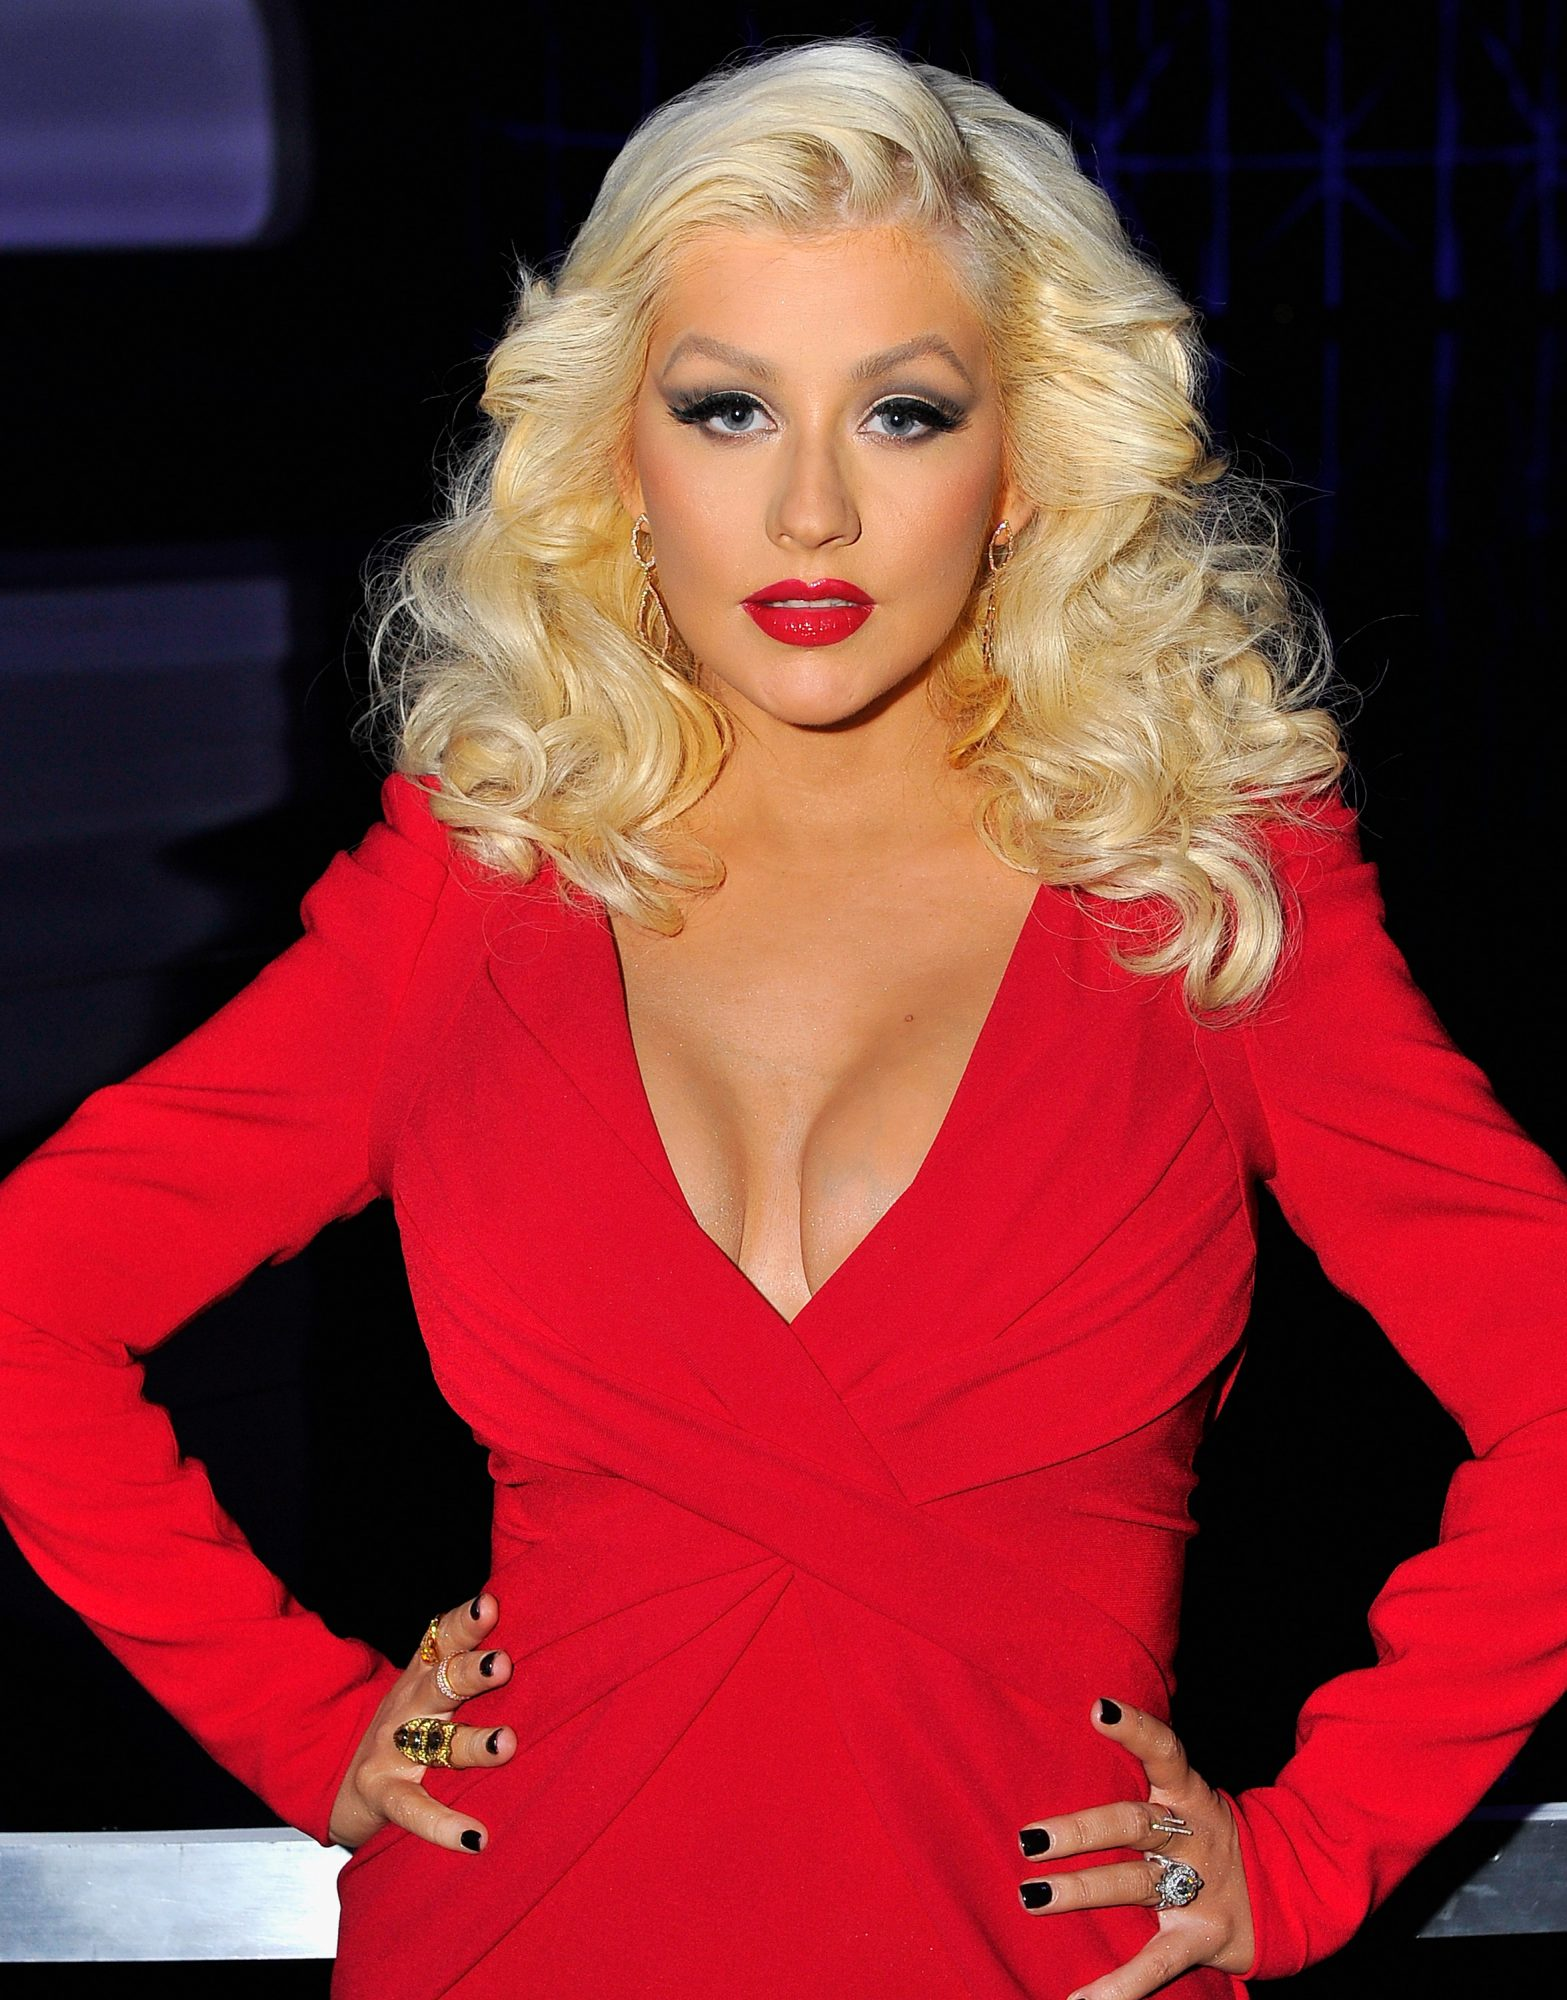 Christina Aguilera Gets a Makeunder and Poses Completely Barefaced in 'Liberating' Photo Shoot